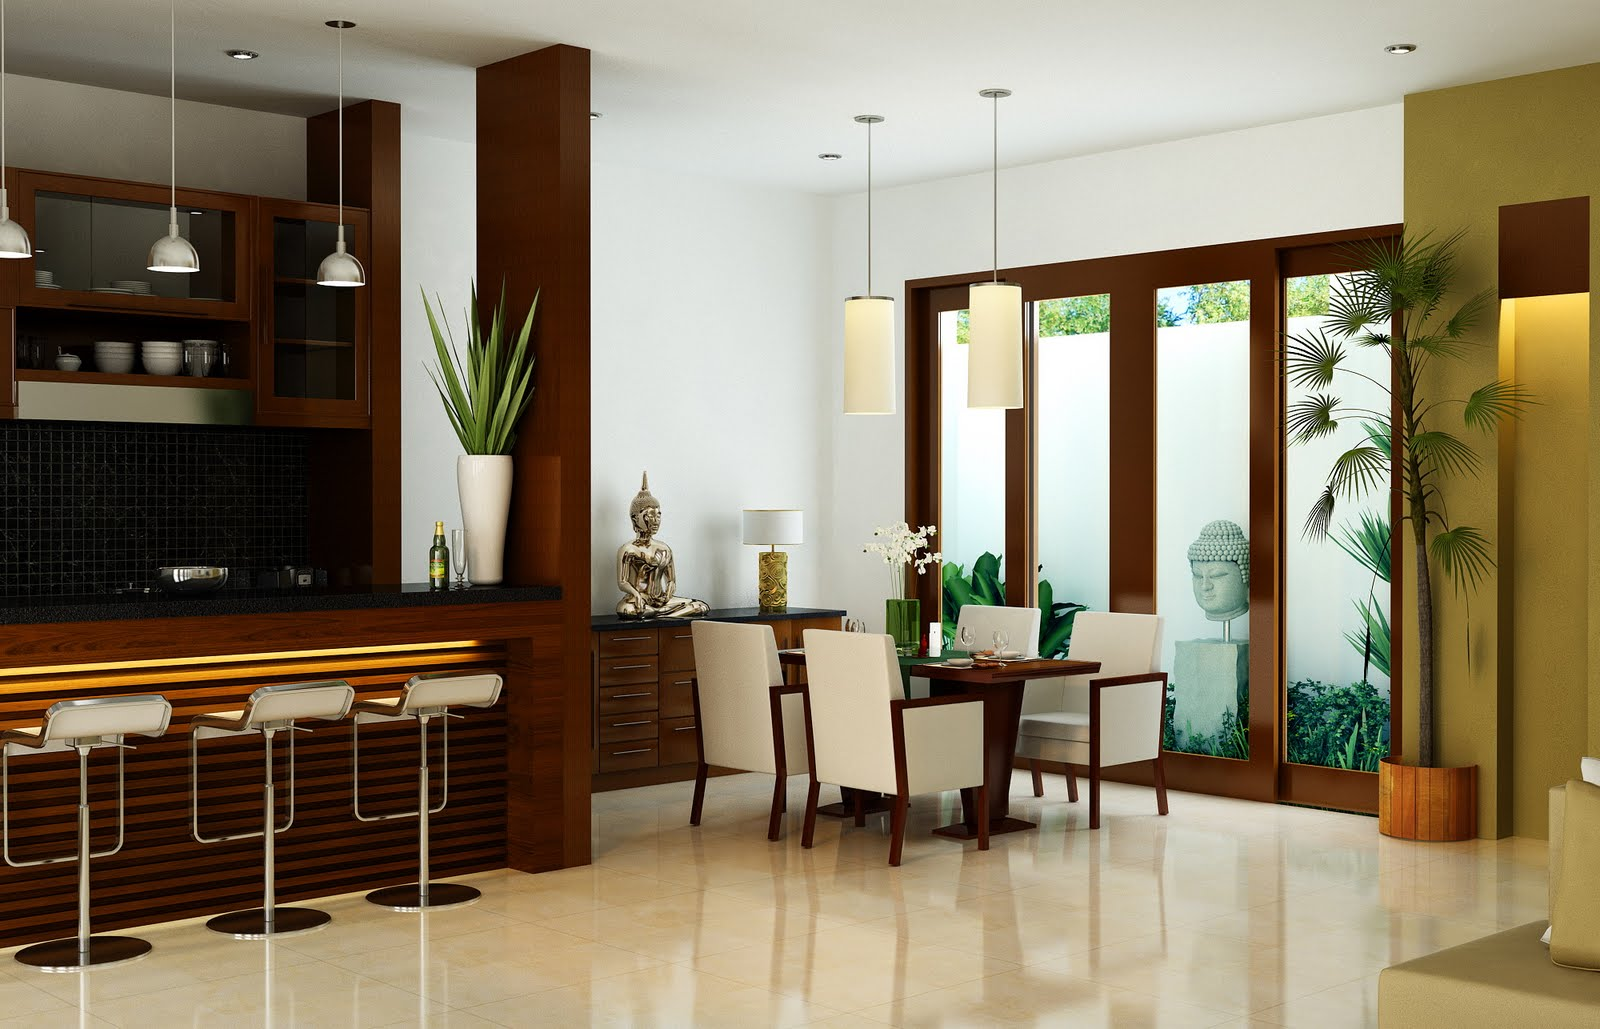 Home Design Interior Singapore Rancangan Rumah 2 Lantai Interior